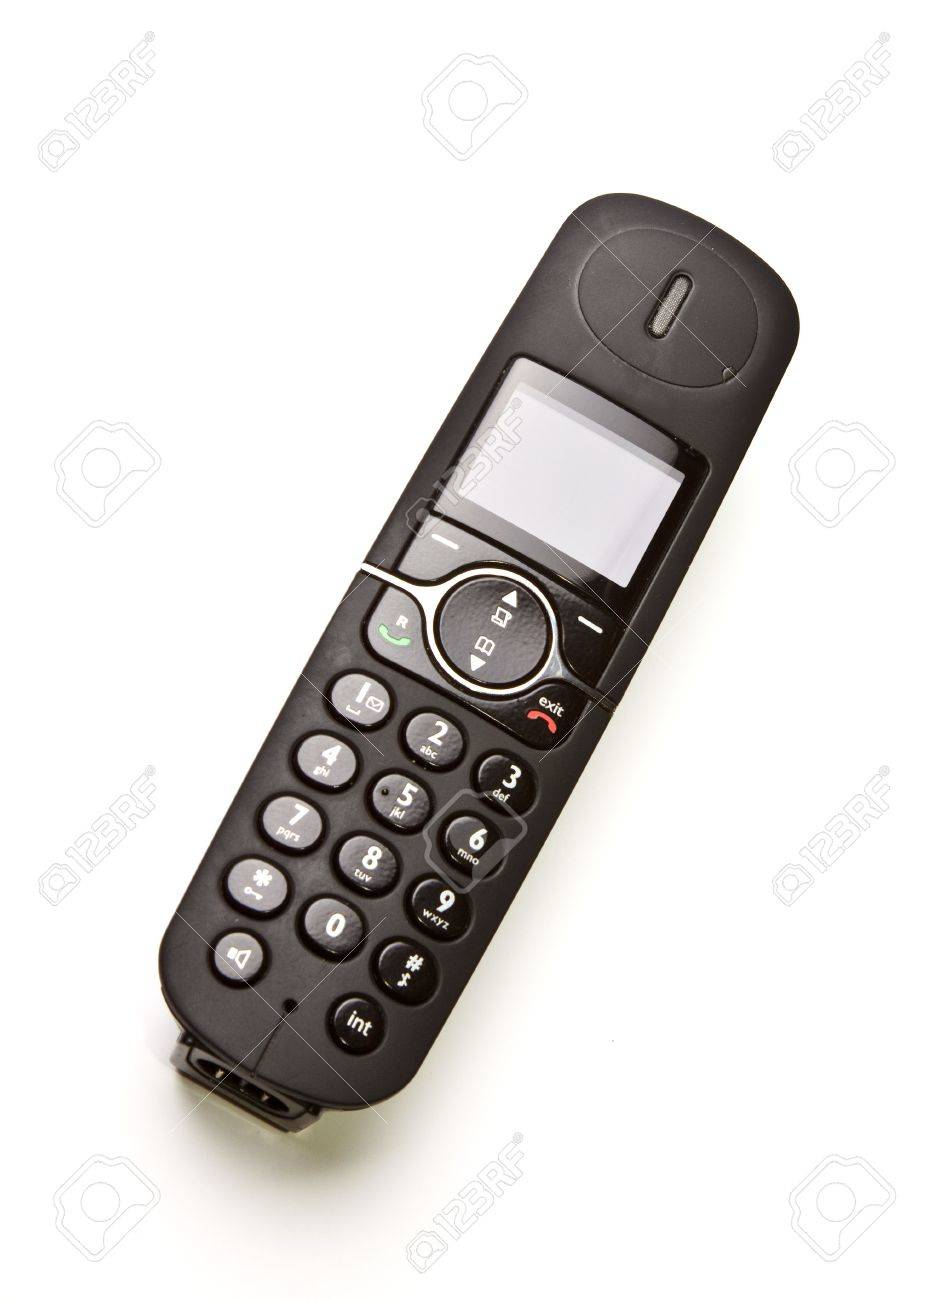 Modern Cordless Telephone Stock Photo, Picture And Royalty Free ...